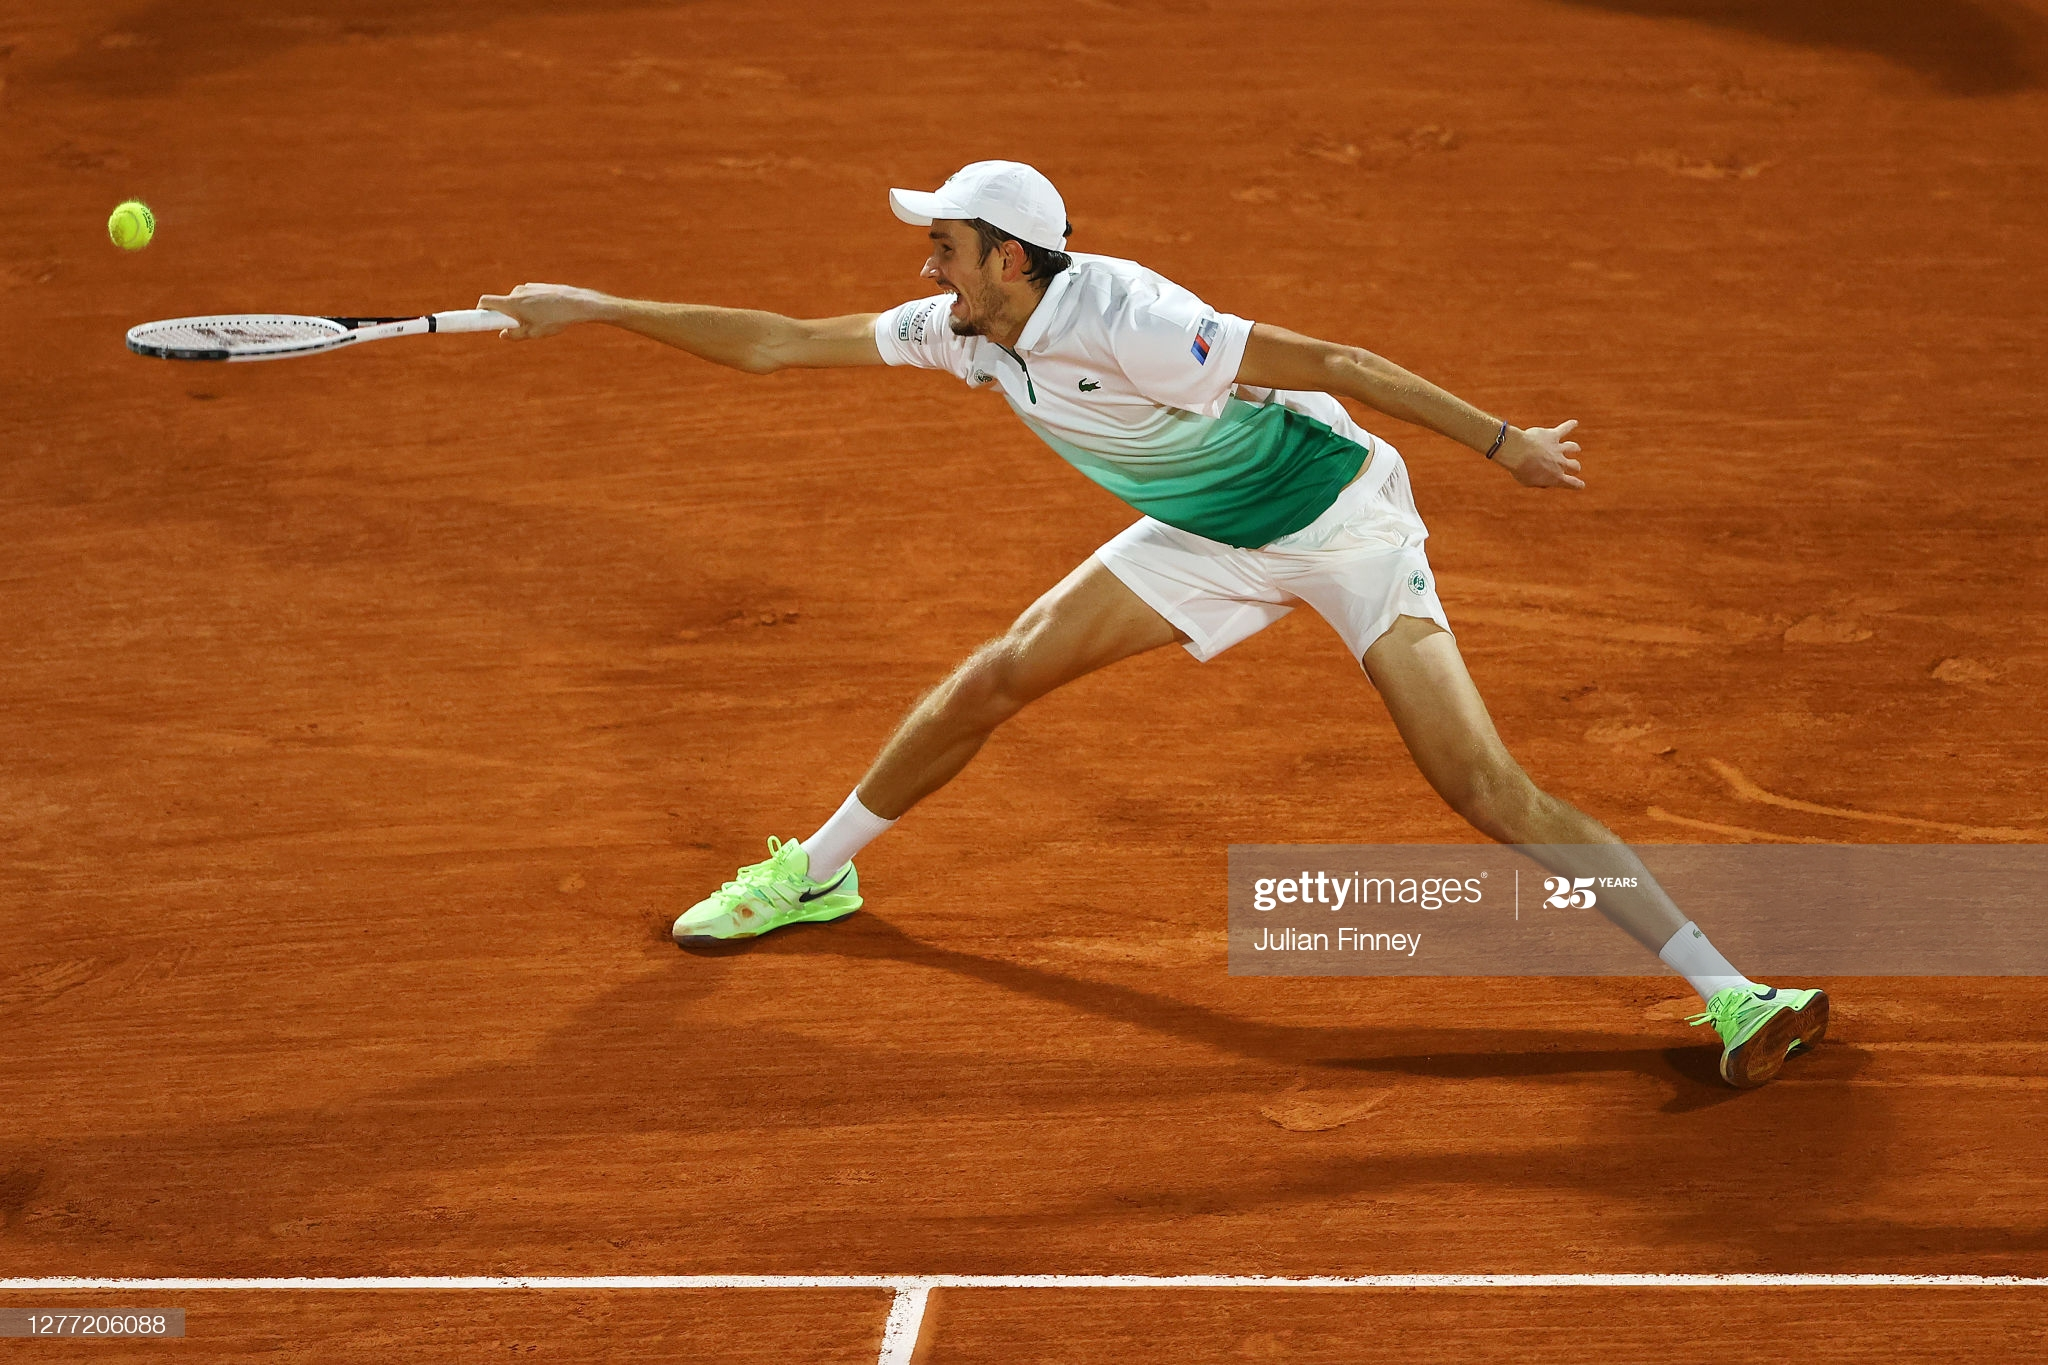 medvedev day two french open 20202